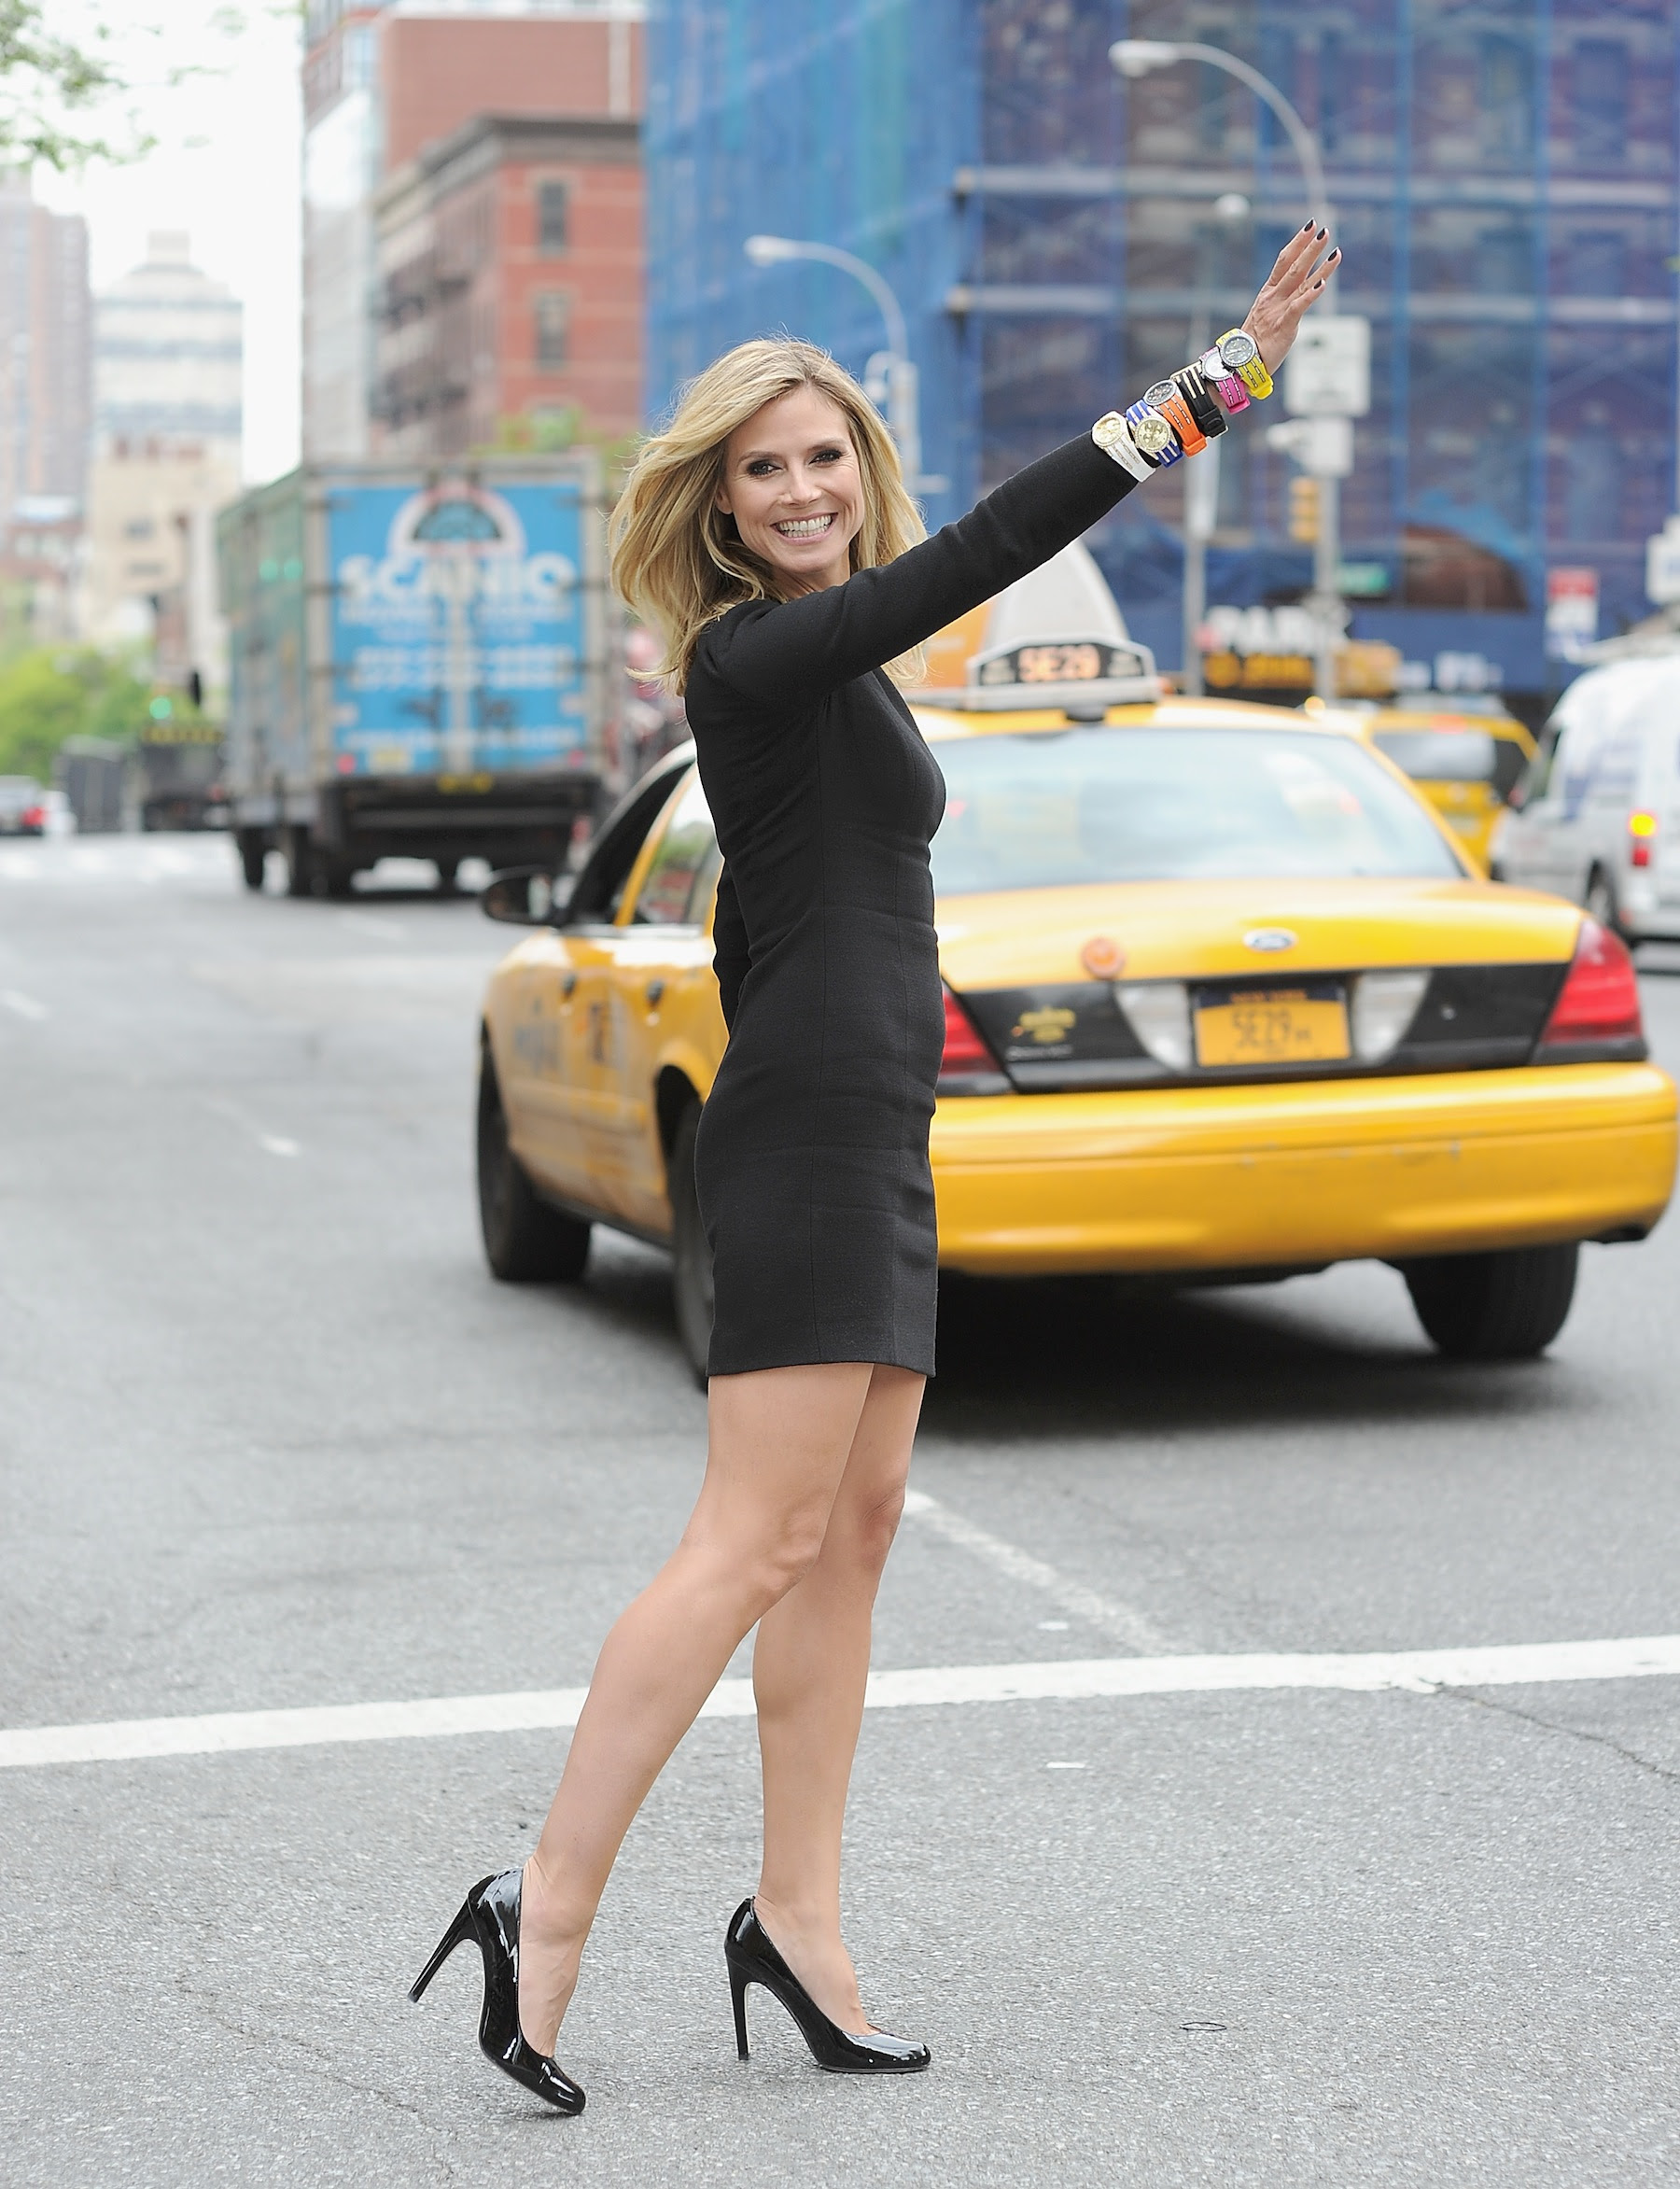 Heid Klum in NYC, where she presented additions to the Wildlife by Heidi Klum QVC Collection (Dimitrios Kambouris/Getty Images for QVC)